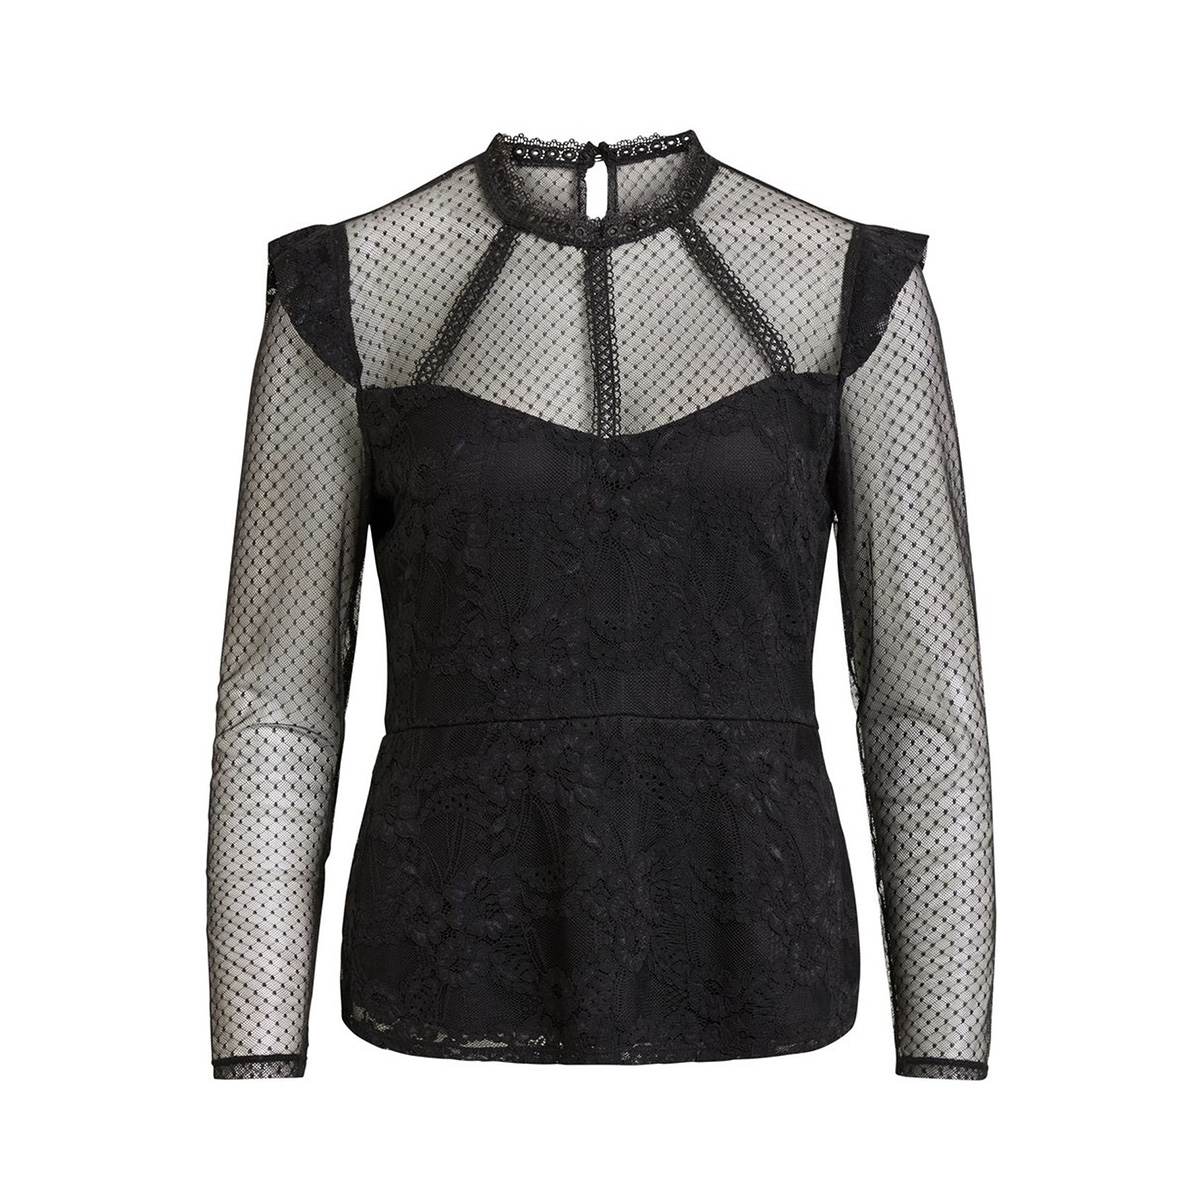 vidusa l/s top 14049682 vila t-shirt black